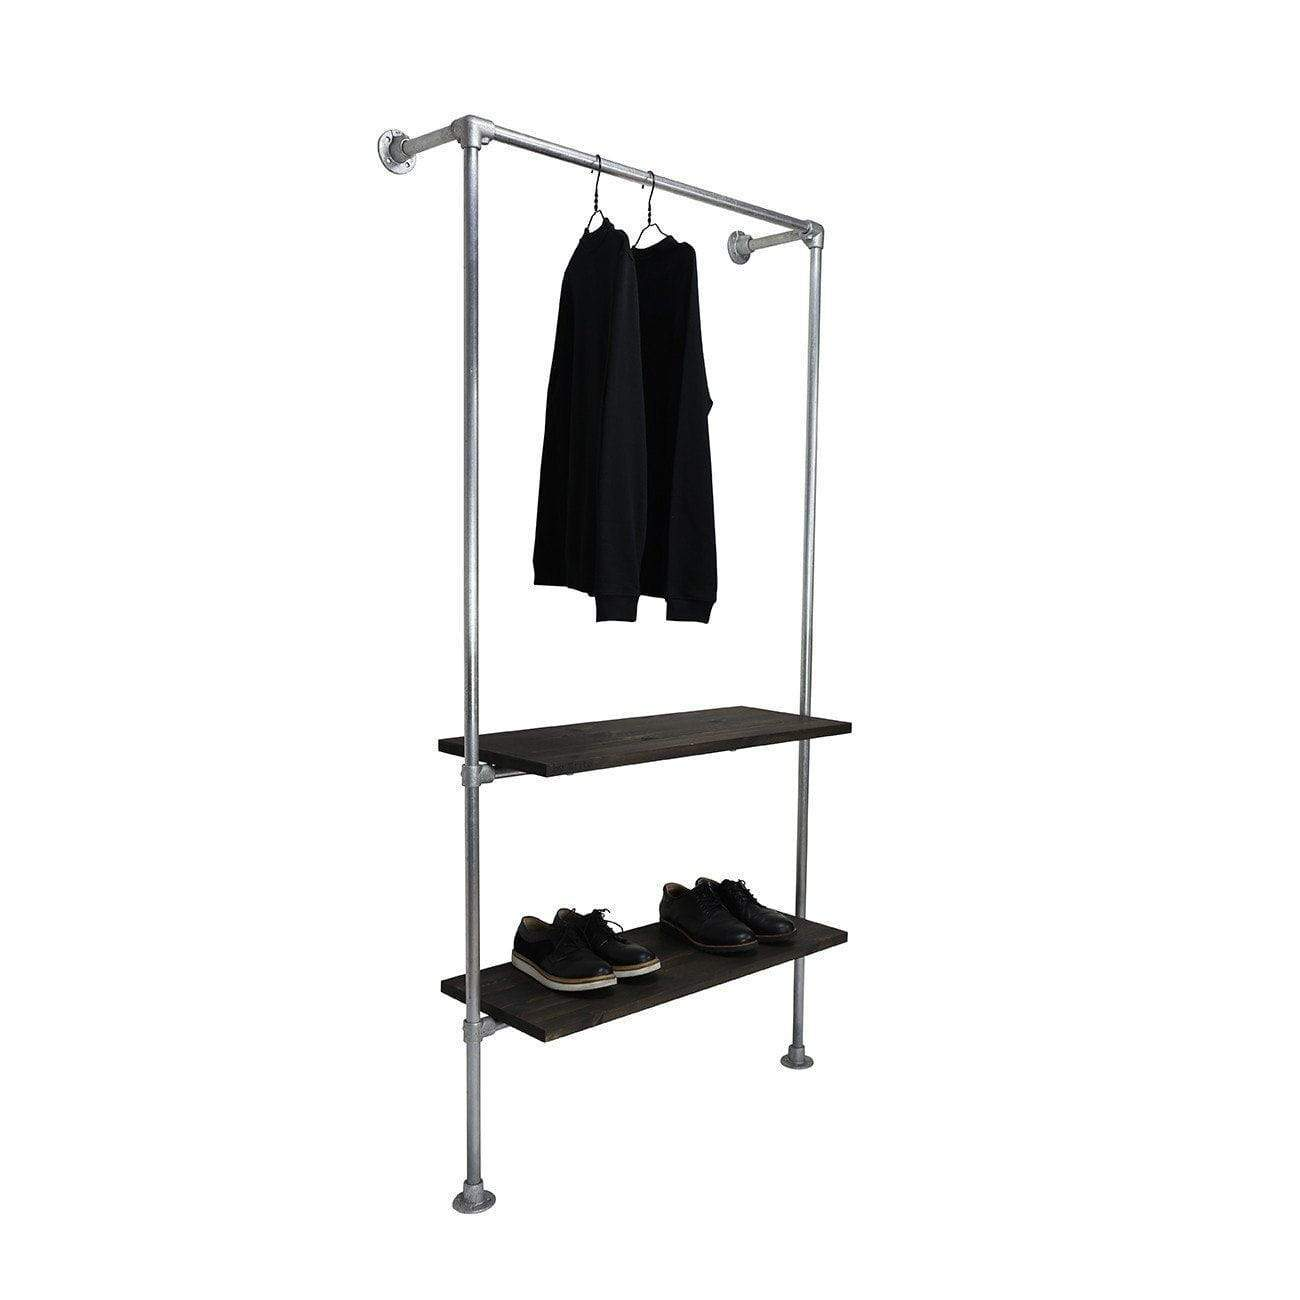 NEW IN: Wall-mounted racks